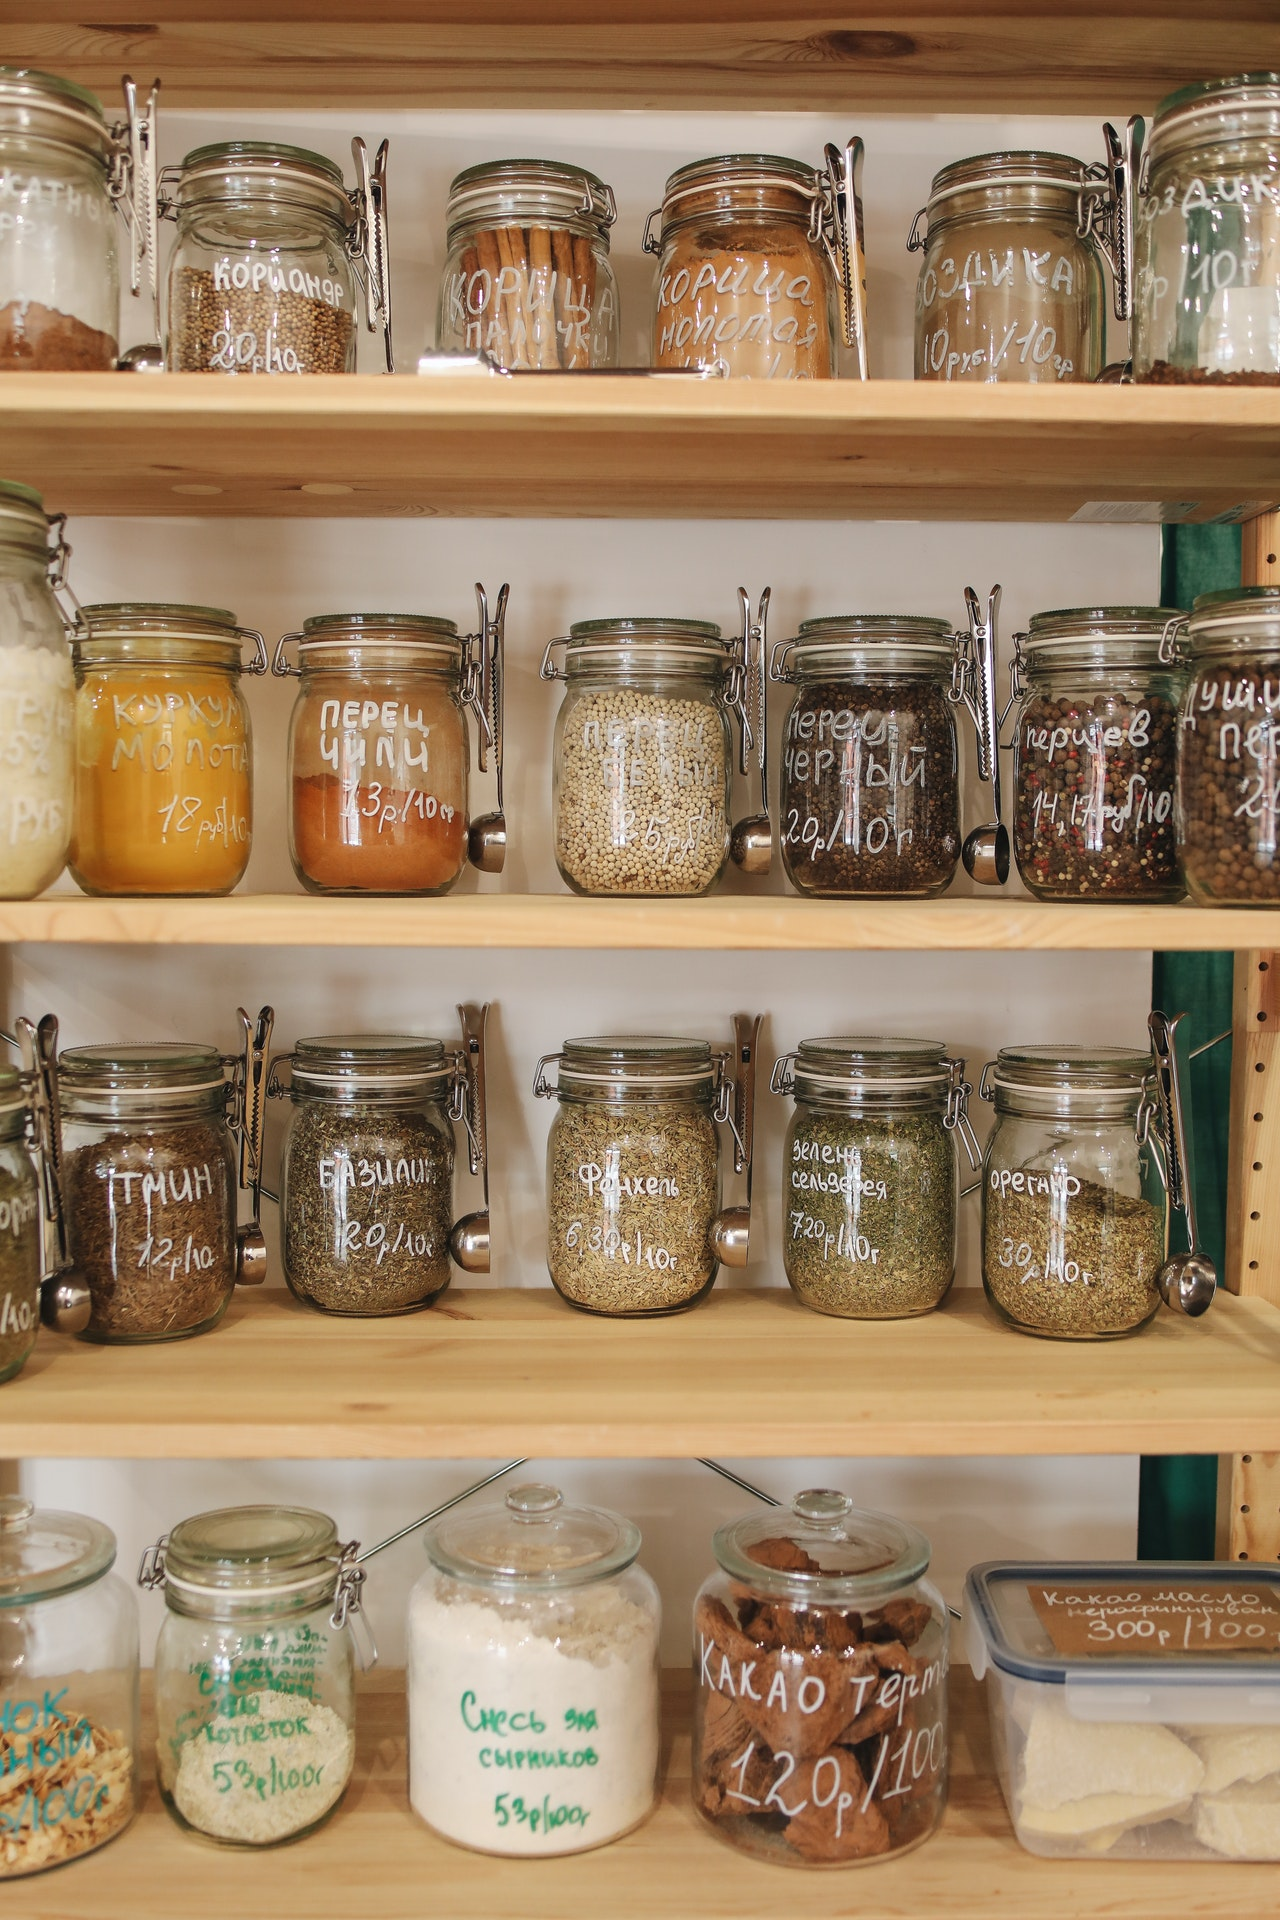 6 Eco-Friendly Tips to Manage Food Waste